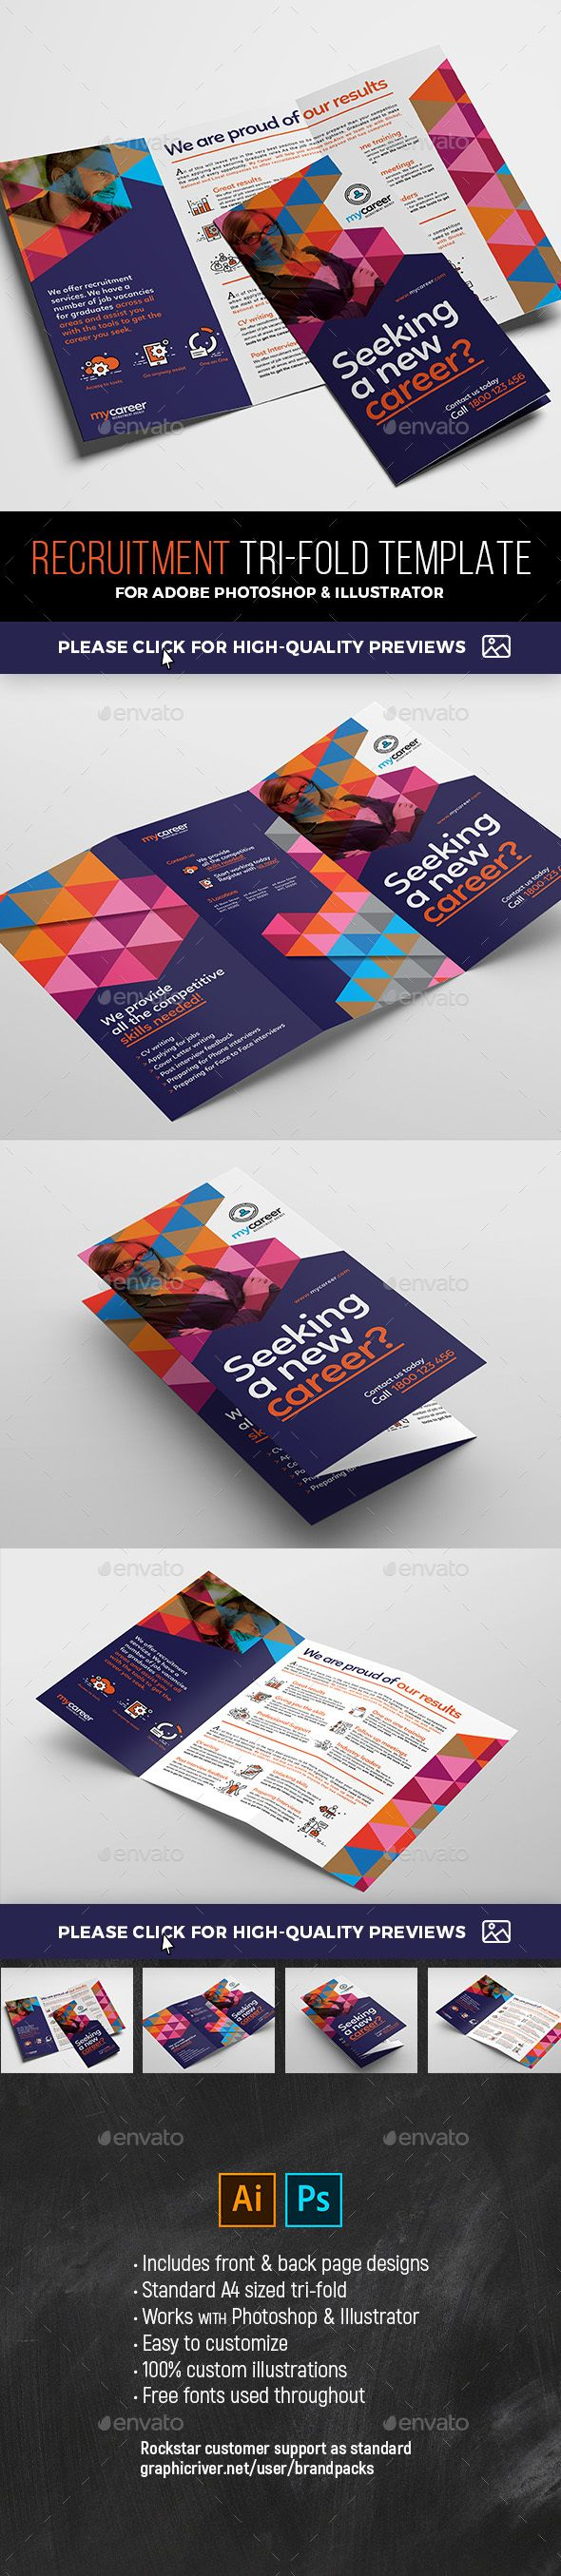 recruitment agency tri fold brochure template psd ai